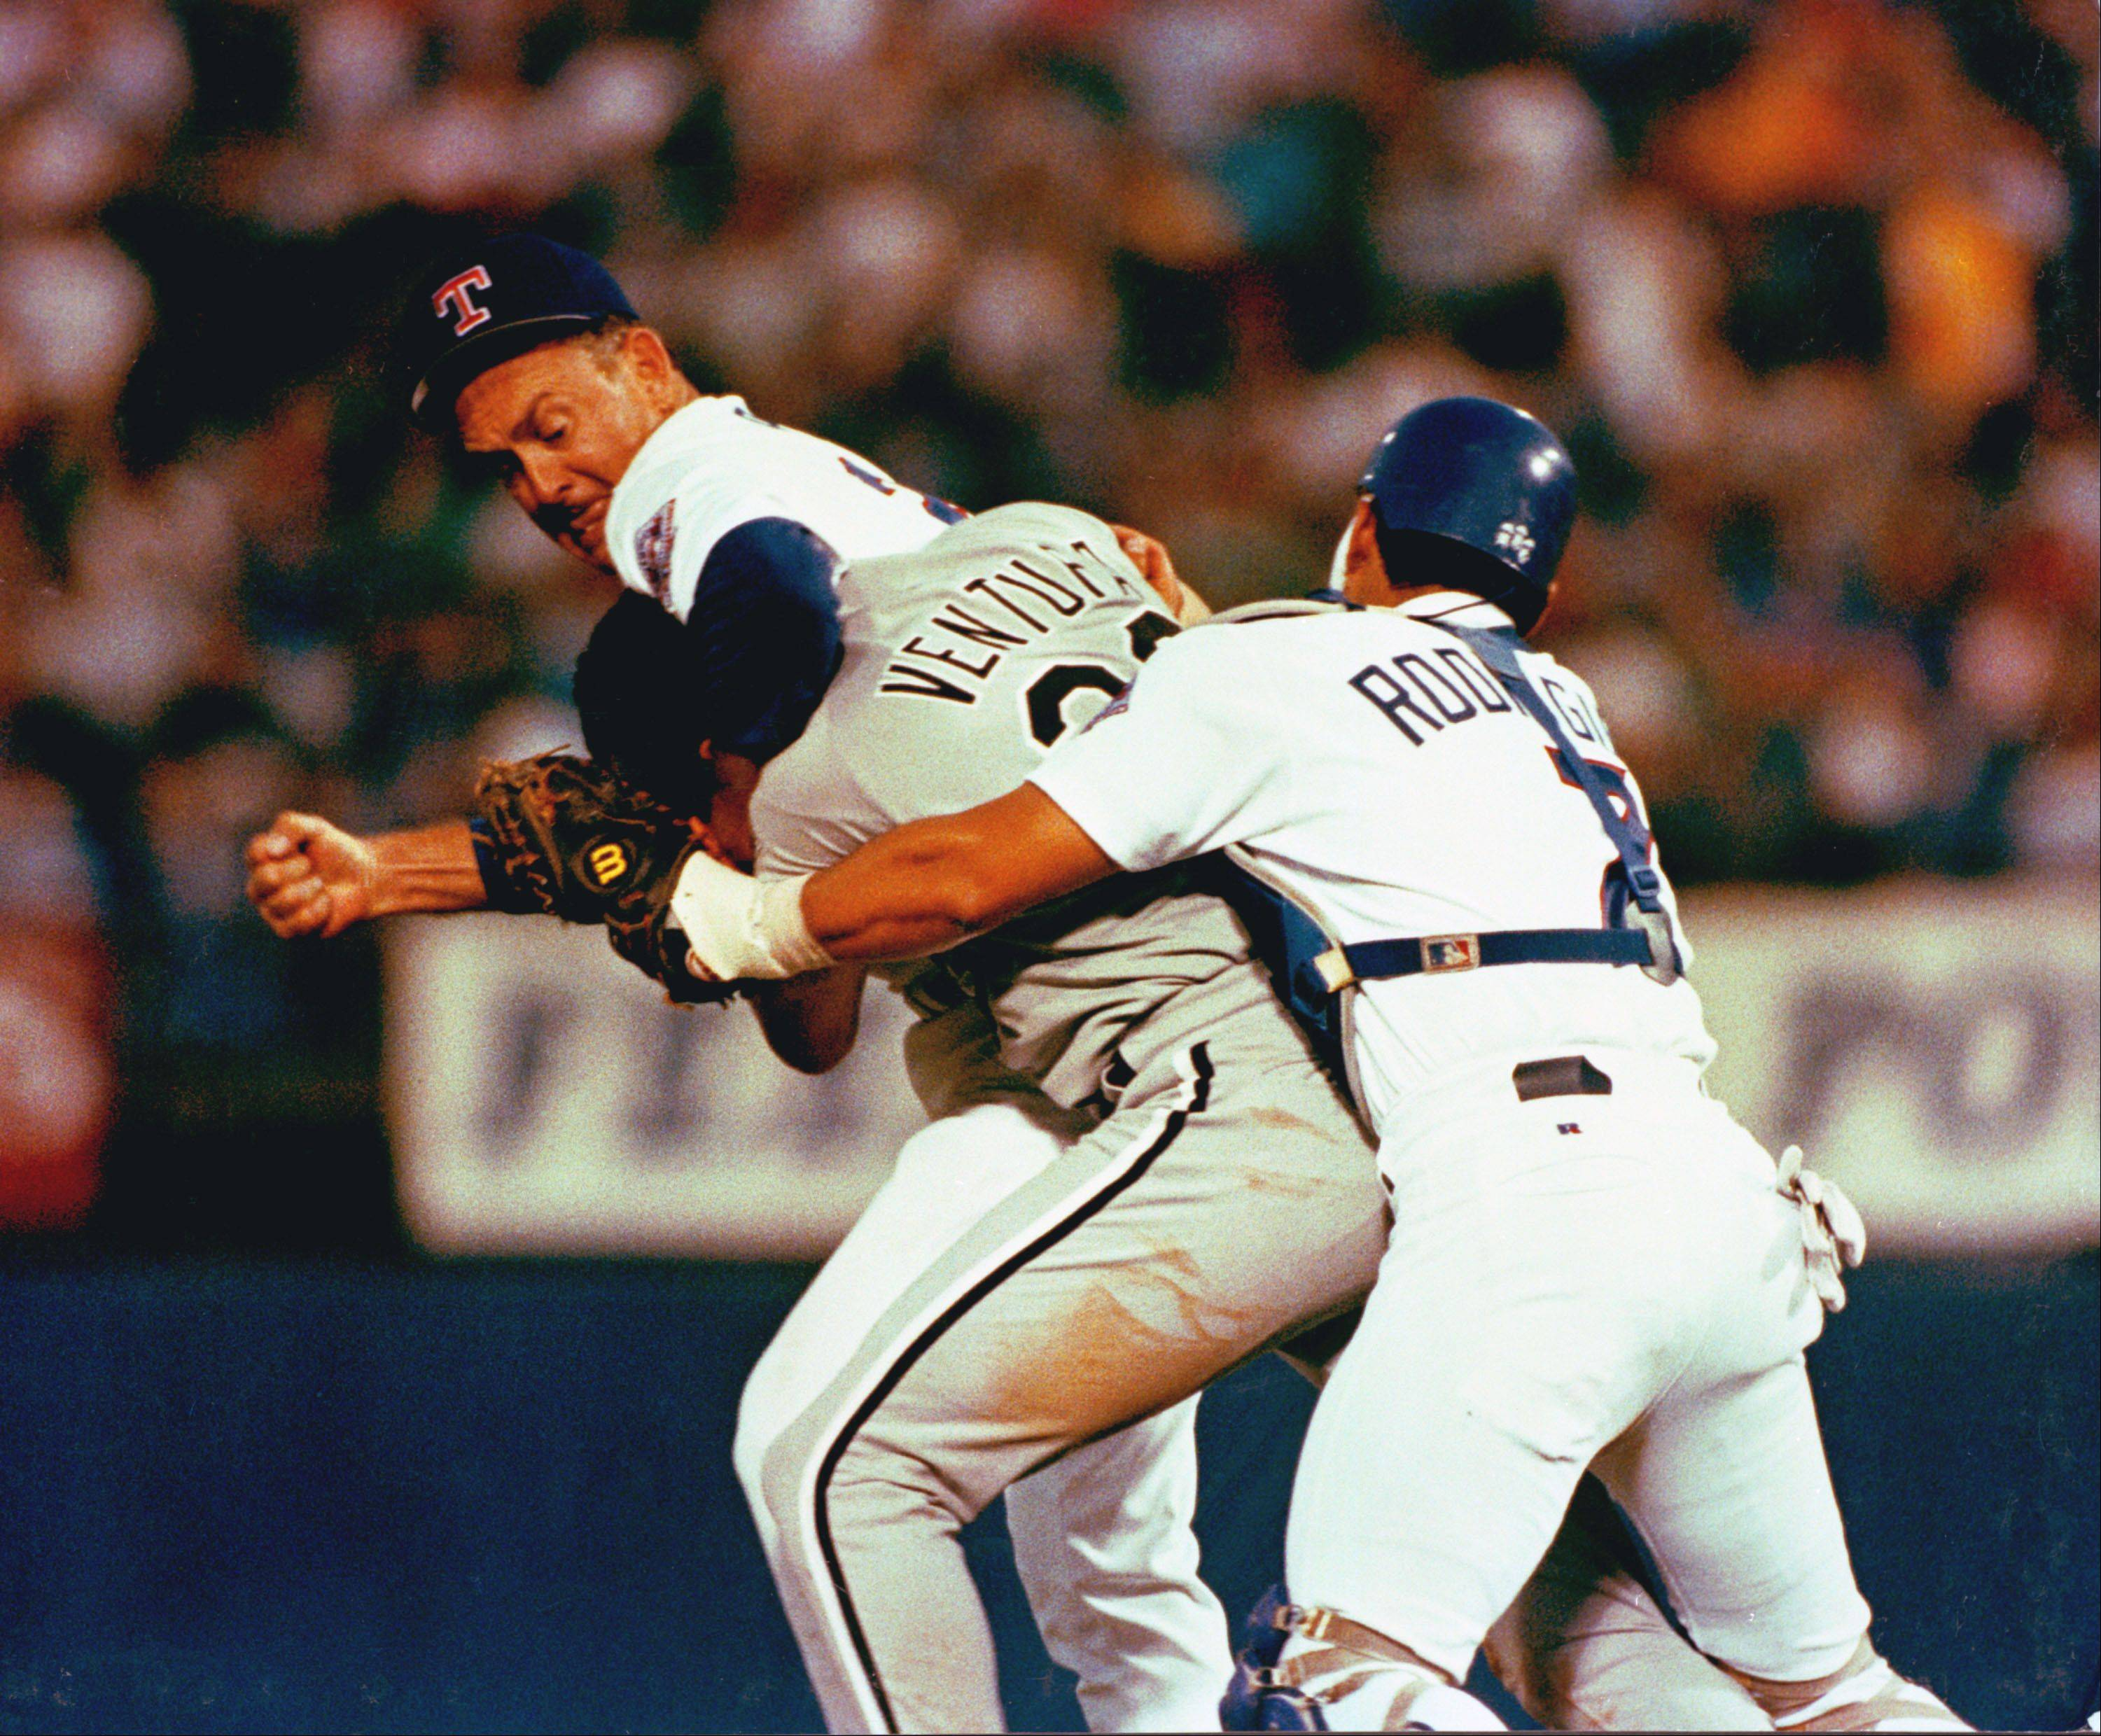 Rangers pitcher Nolan Ryan hits Robin Ventura after Ventura charged the mound in Arlington, Tex., on Aug. 4, 1993.